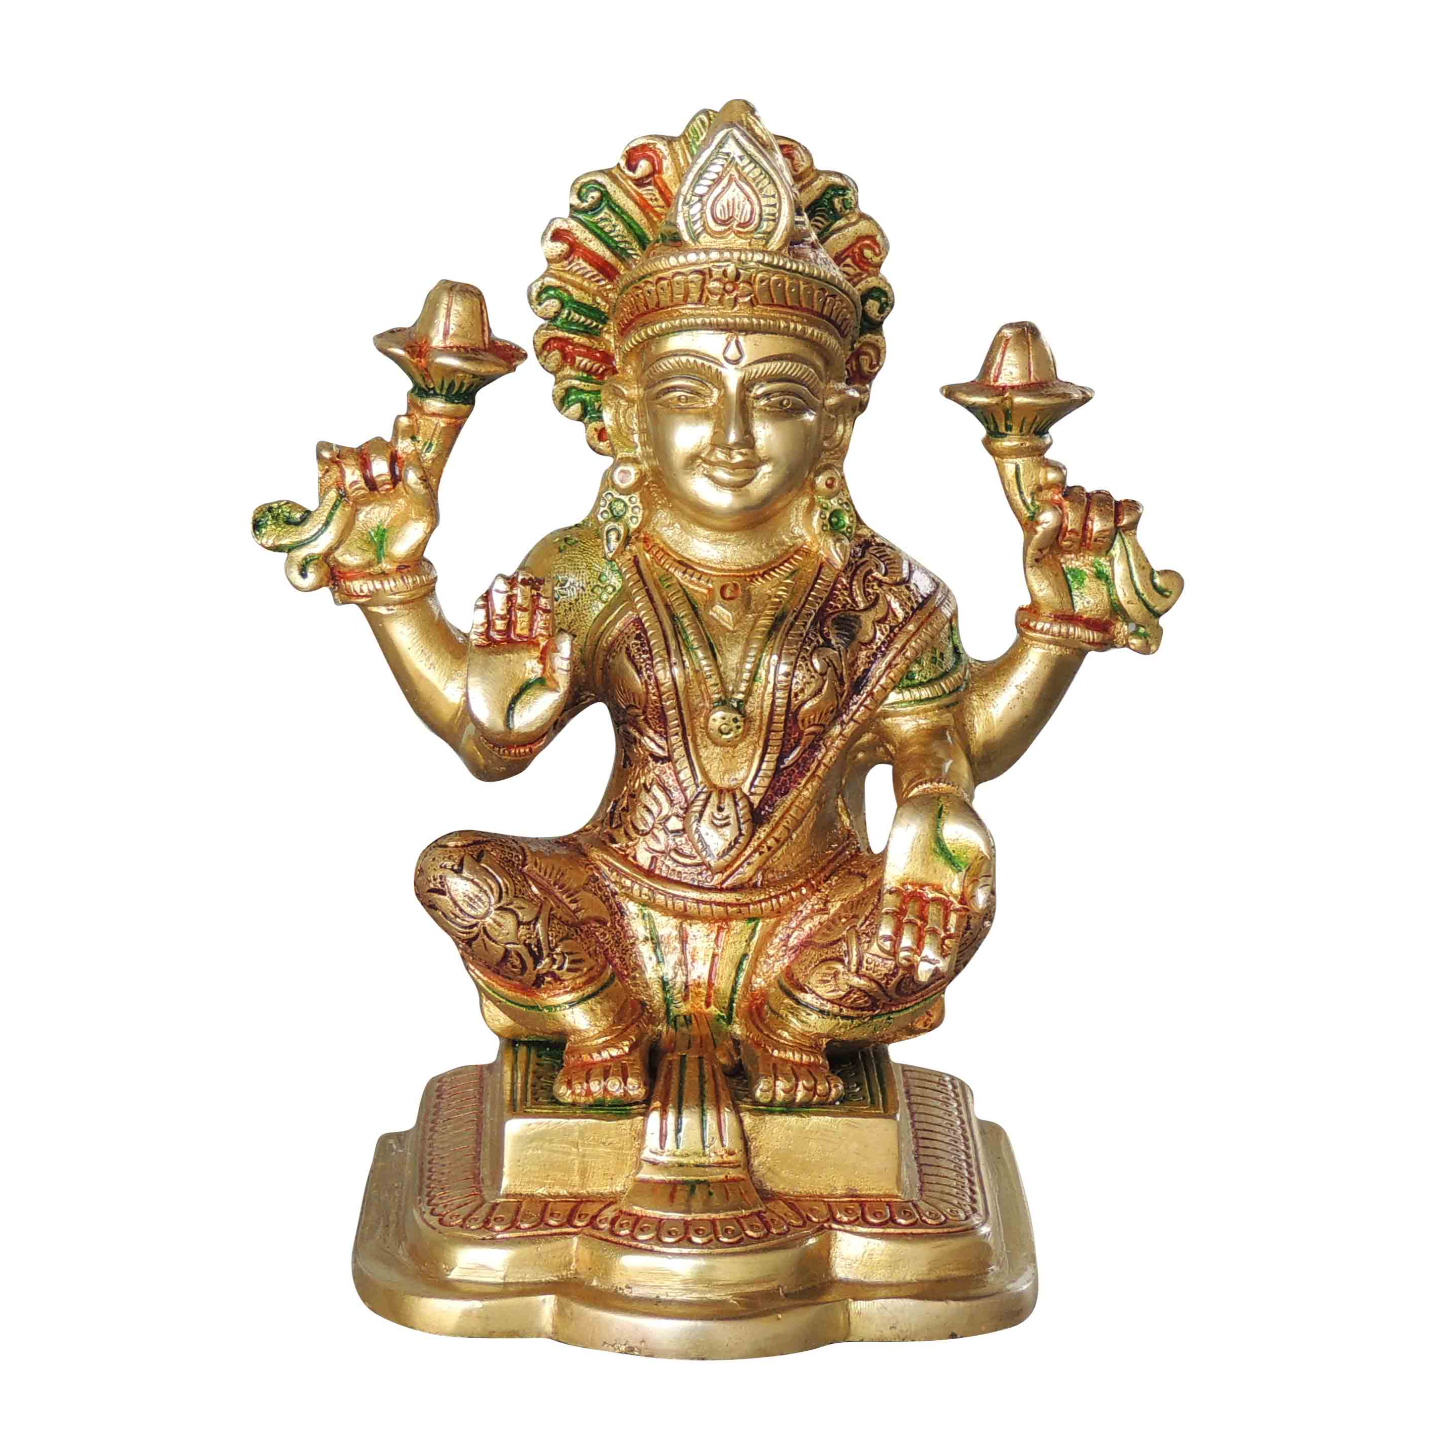 Brass Laxmi Statue Murti Idol in MultiColour Lacuquer Finish - 7.5 inch (BS1063 L)